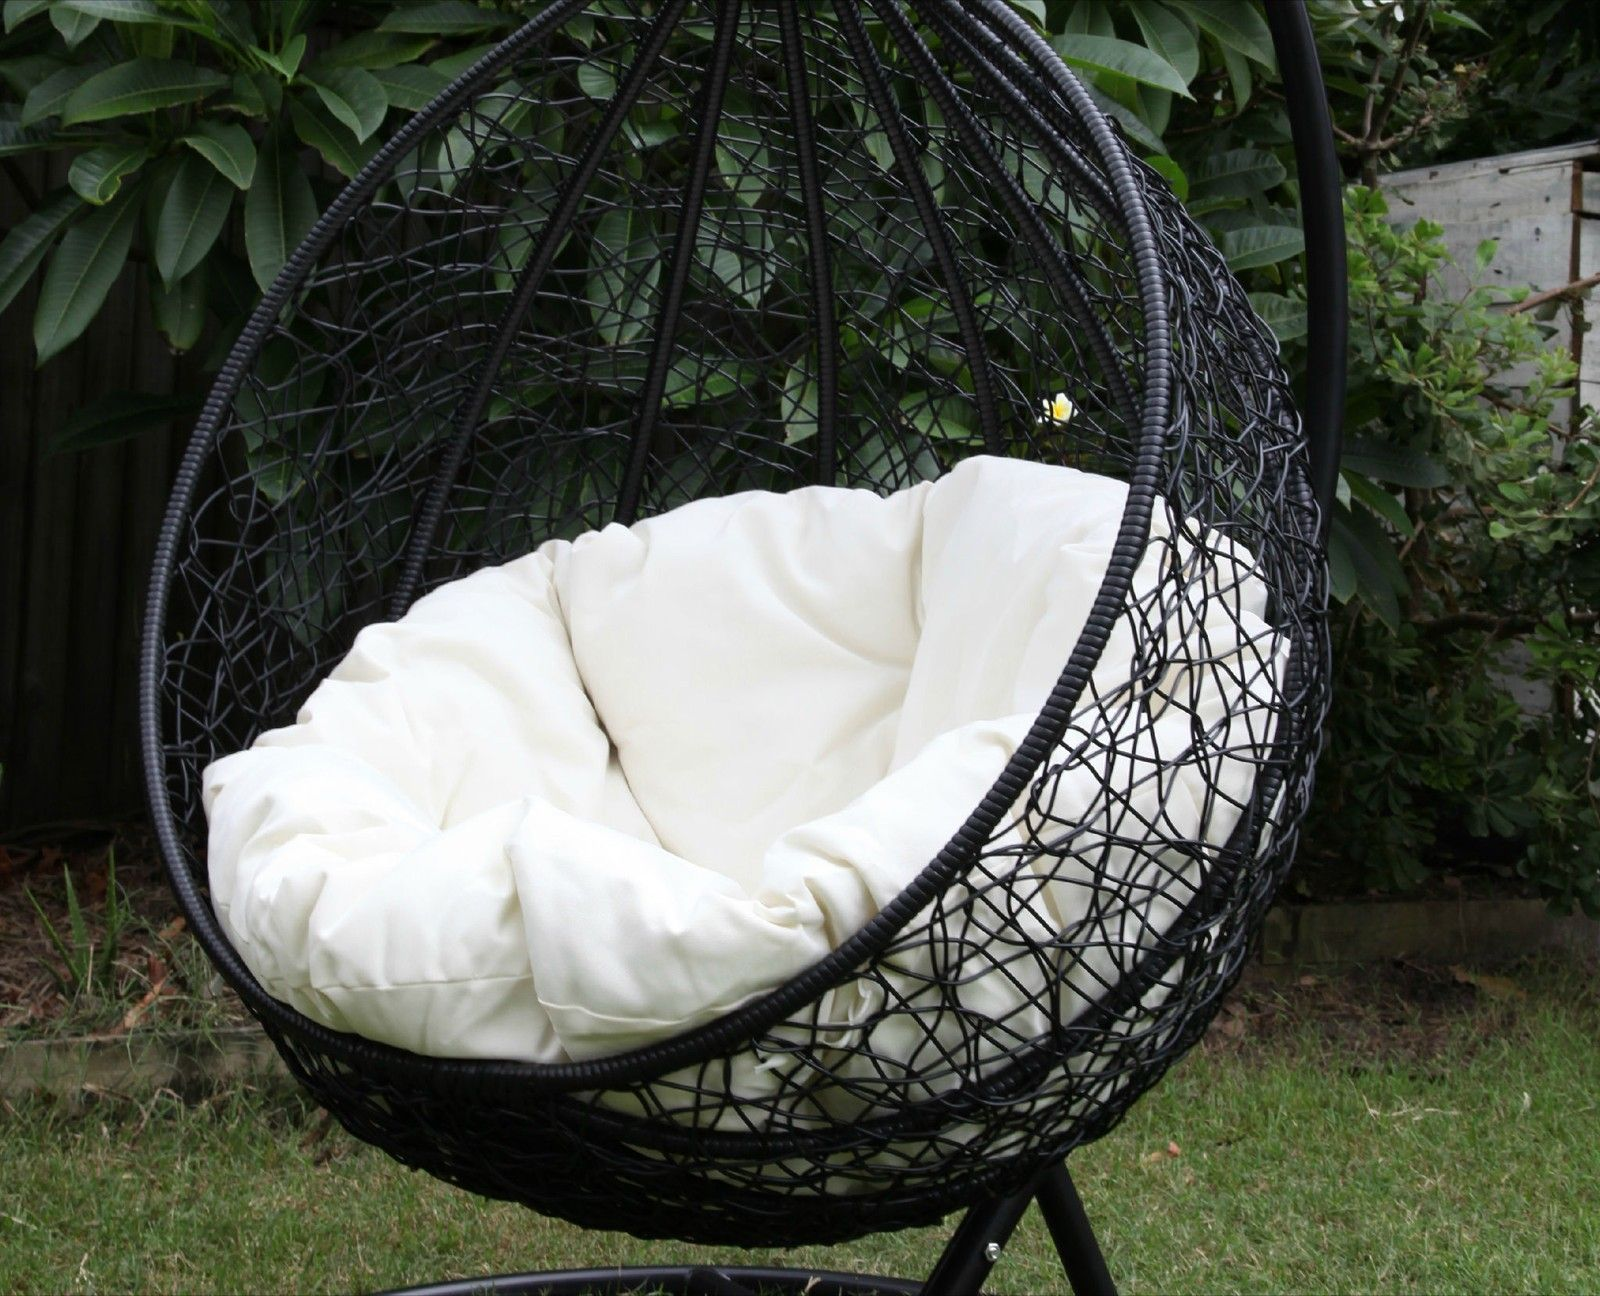 Bar Chair Perfect Ikea Egg Chair Review Egg Chair Hanging Bubble Chair  Under Comfy Outdoor Hanging Chair Design Ideas Furniture Hanging Cane Chair.